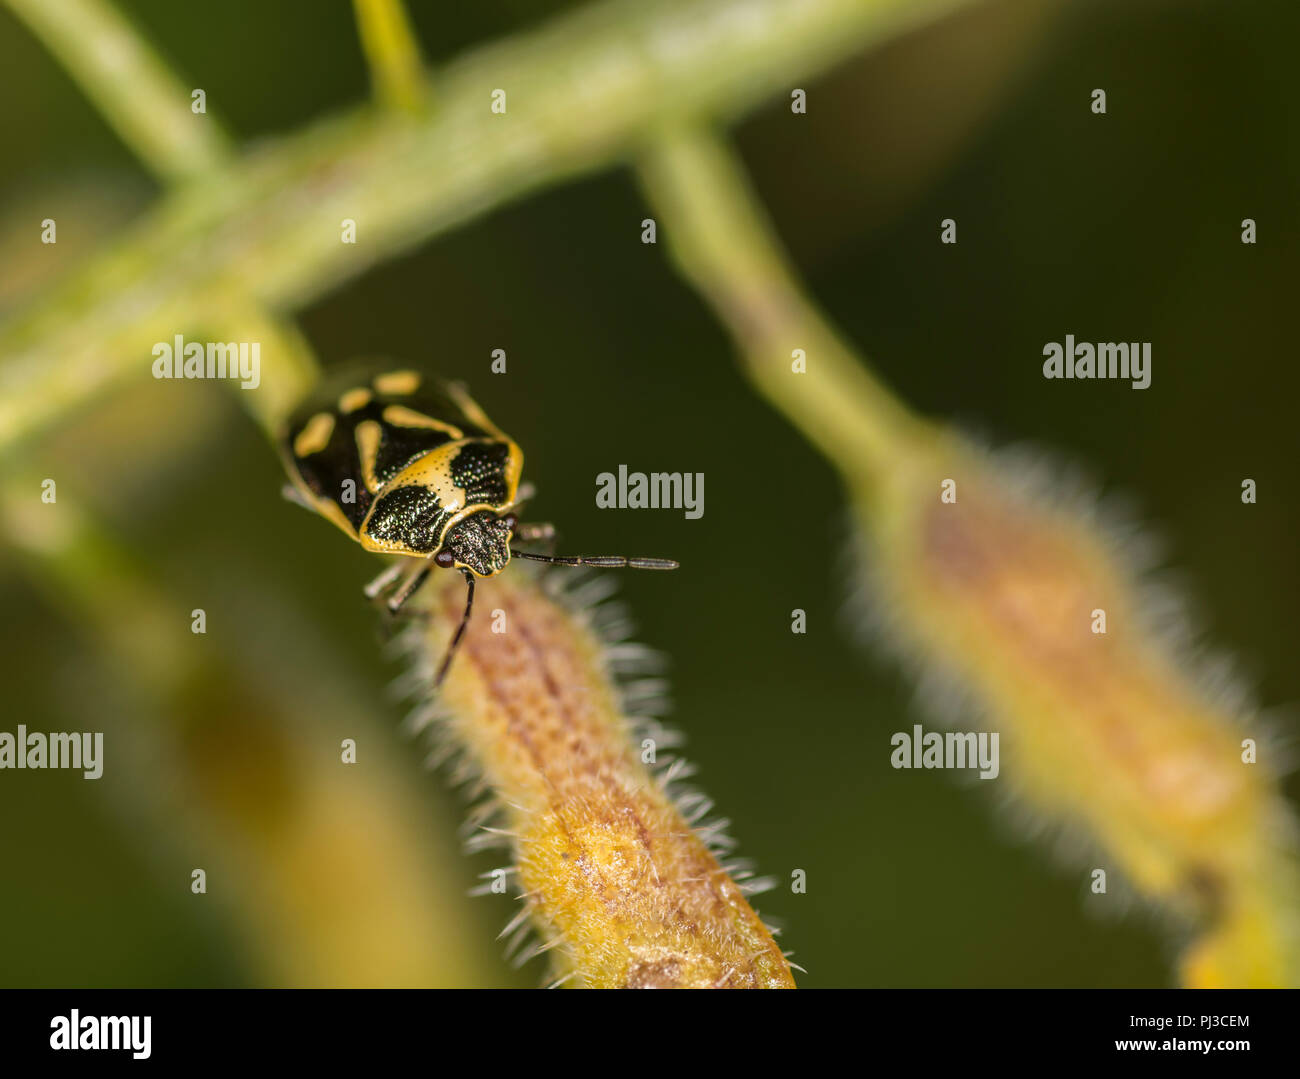 Newly hatched brown marmorated shield bug on a twig Stock Photo